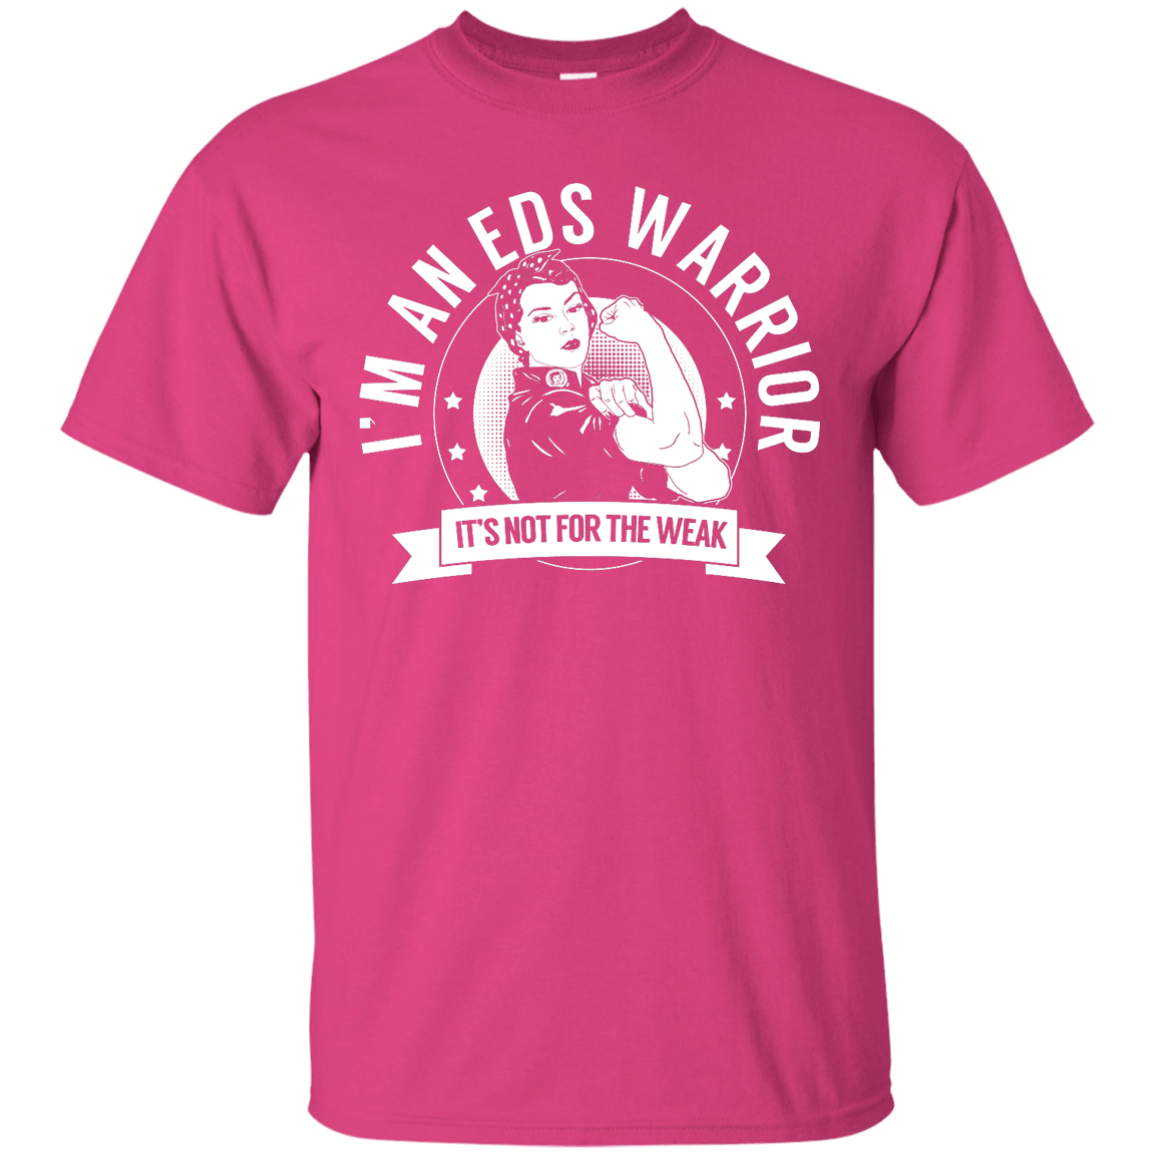 Short Sleeve - Ehlers Danlos Syndrome - EDS Warrior Not For The Weak Unisex Shirt